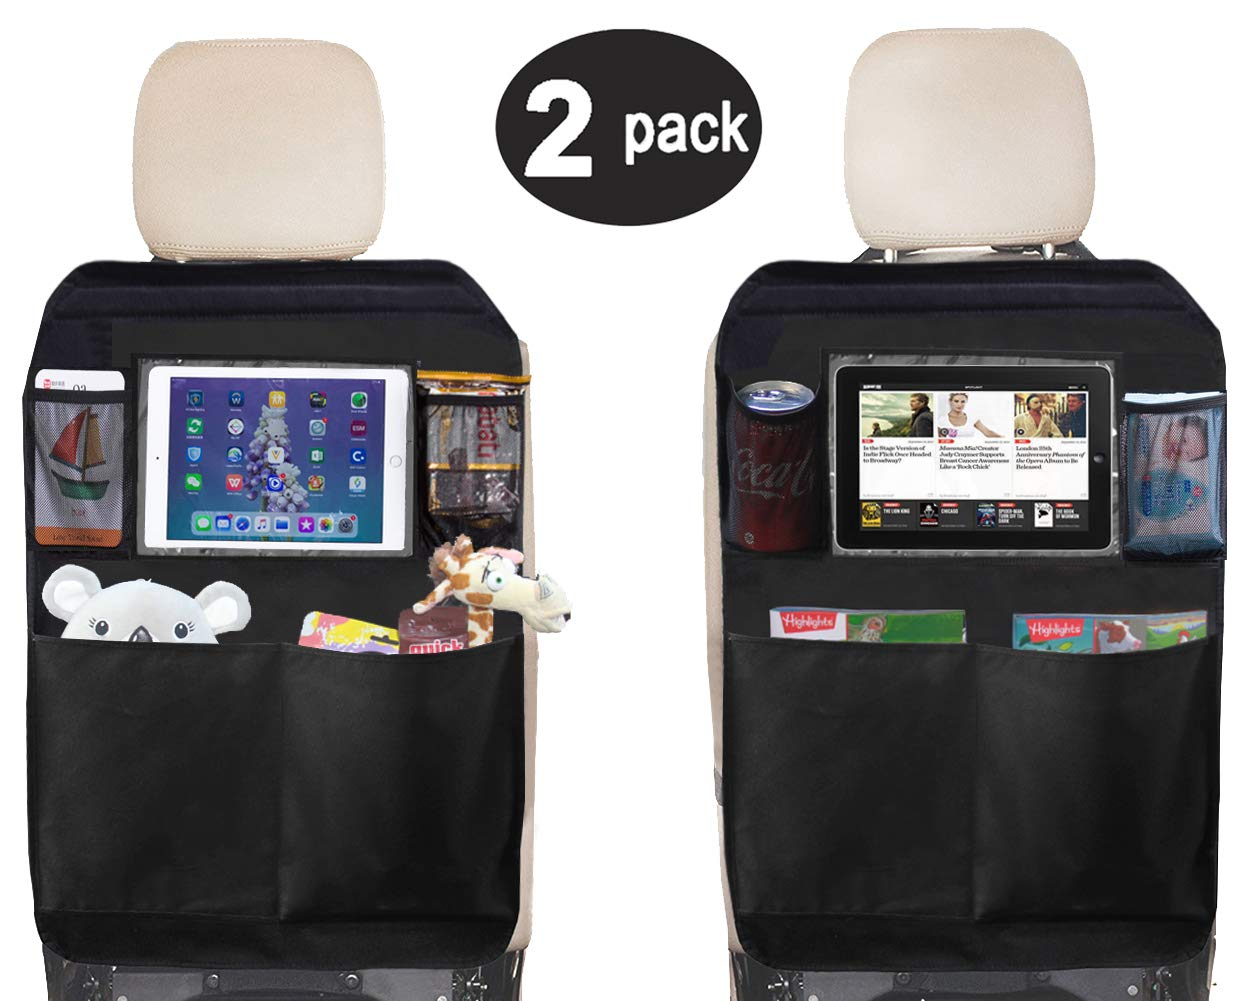 Kick Mat Seat Back Protectors with PVC Pockets Seat Covers for Car Backseat, 2 Pack (Black 2) Sleeping Lamb